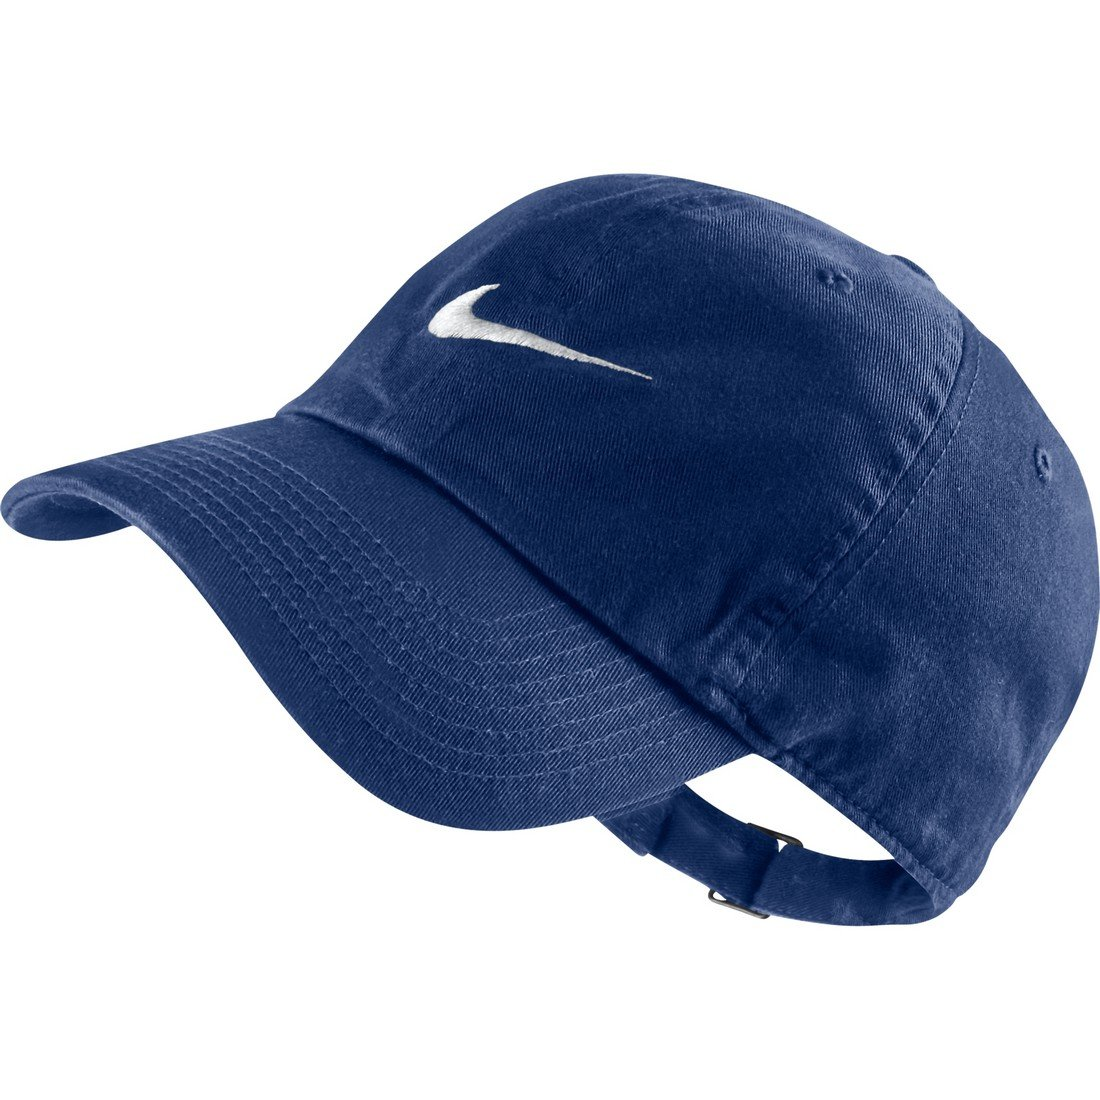 50bafd8575d Amazon.com  Nike Heritage 86 Cap Uni Sex (One Size